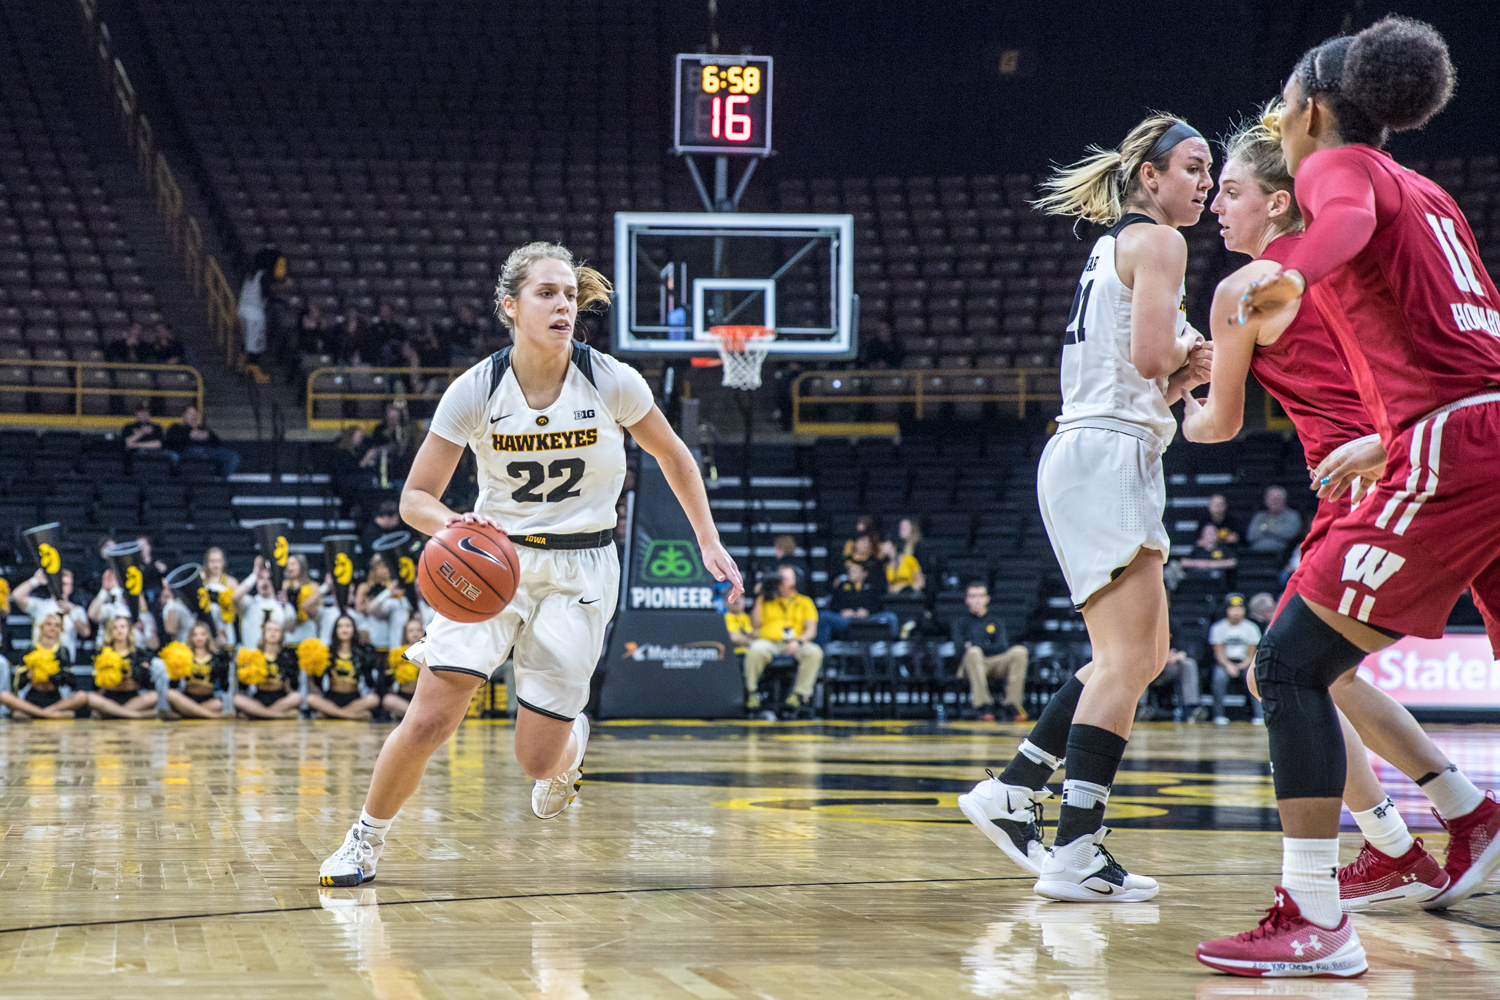 Iowa guard Kathleen Doyle dribbles during a women's basketball matchup between Wisconsin and Iowa on Monday, Jan. 7, 2019. The Hawkeyes defeated the Badgers, 71-53.